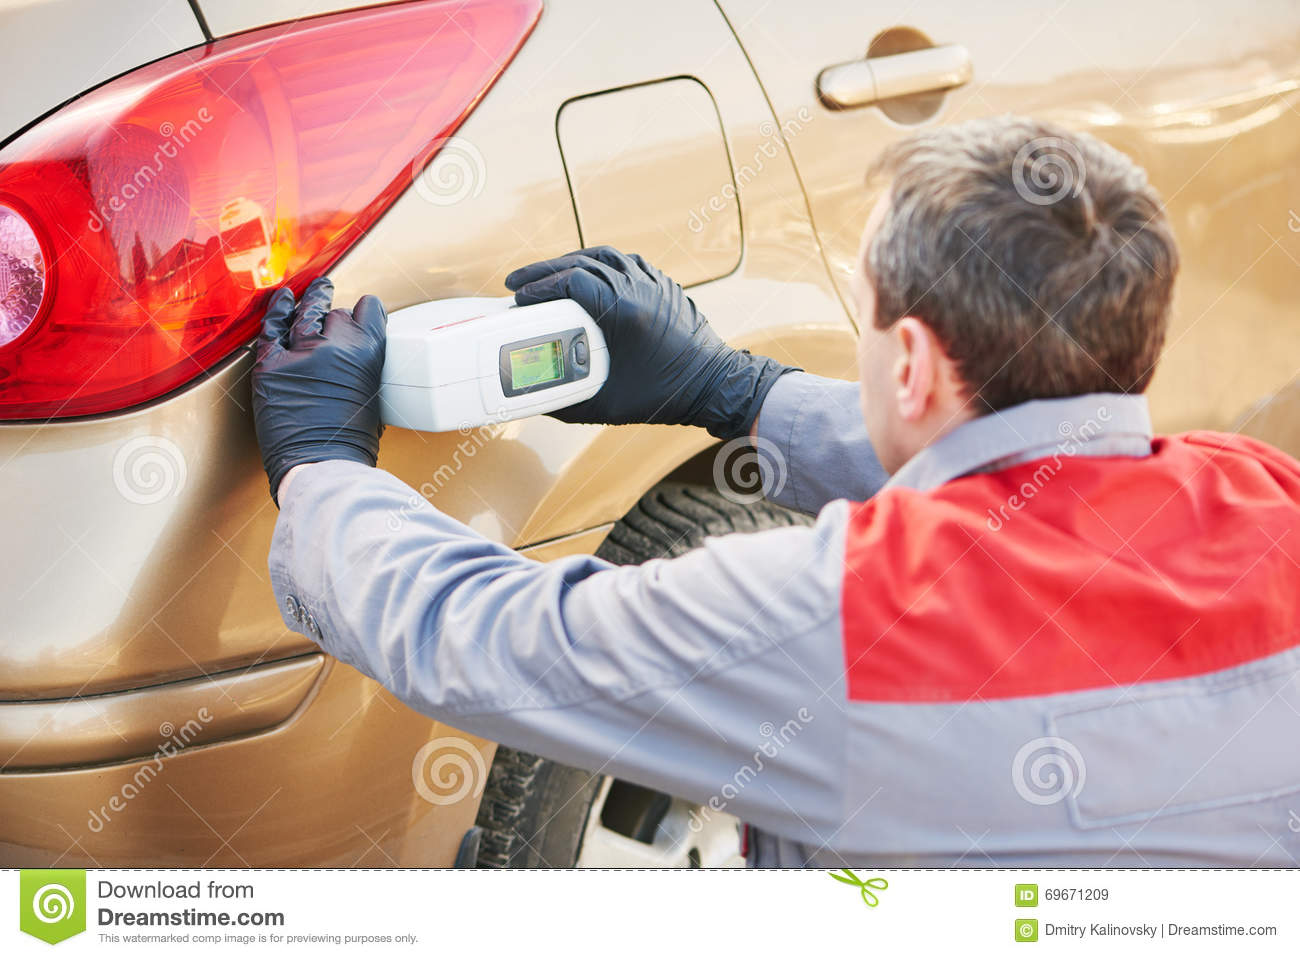 Car paint colour - Colourist Man Selecting Color Of Car With Paint Matching Scanner Royalty Free Stock Images